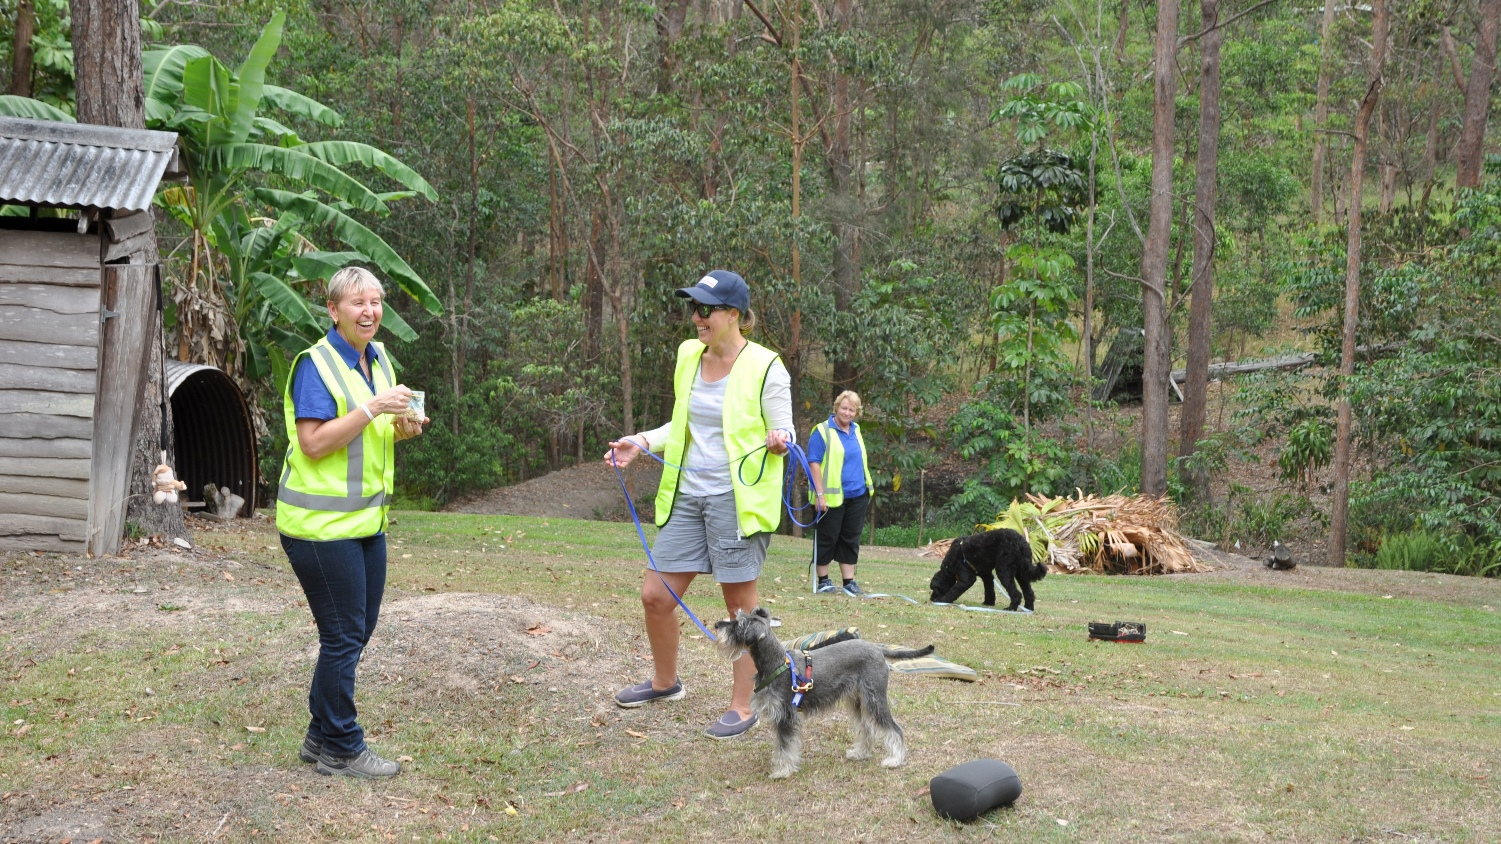 Canine Communication Workshop - Walking Dog on Long Lead - Resized